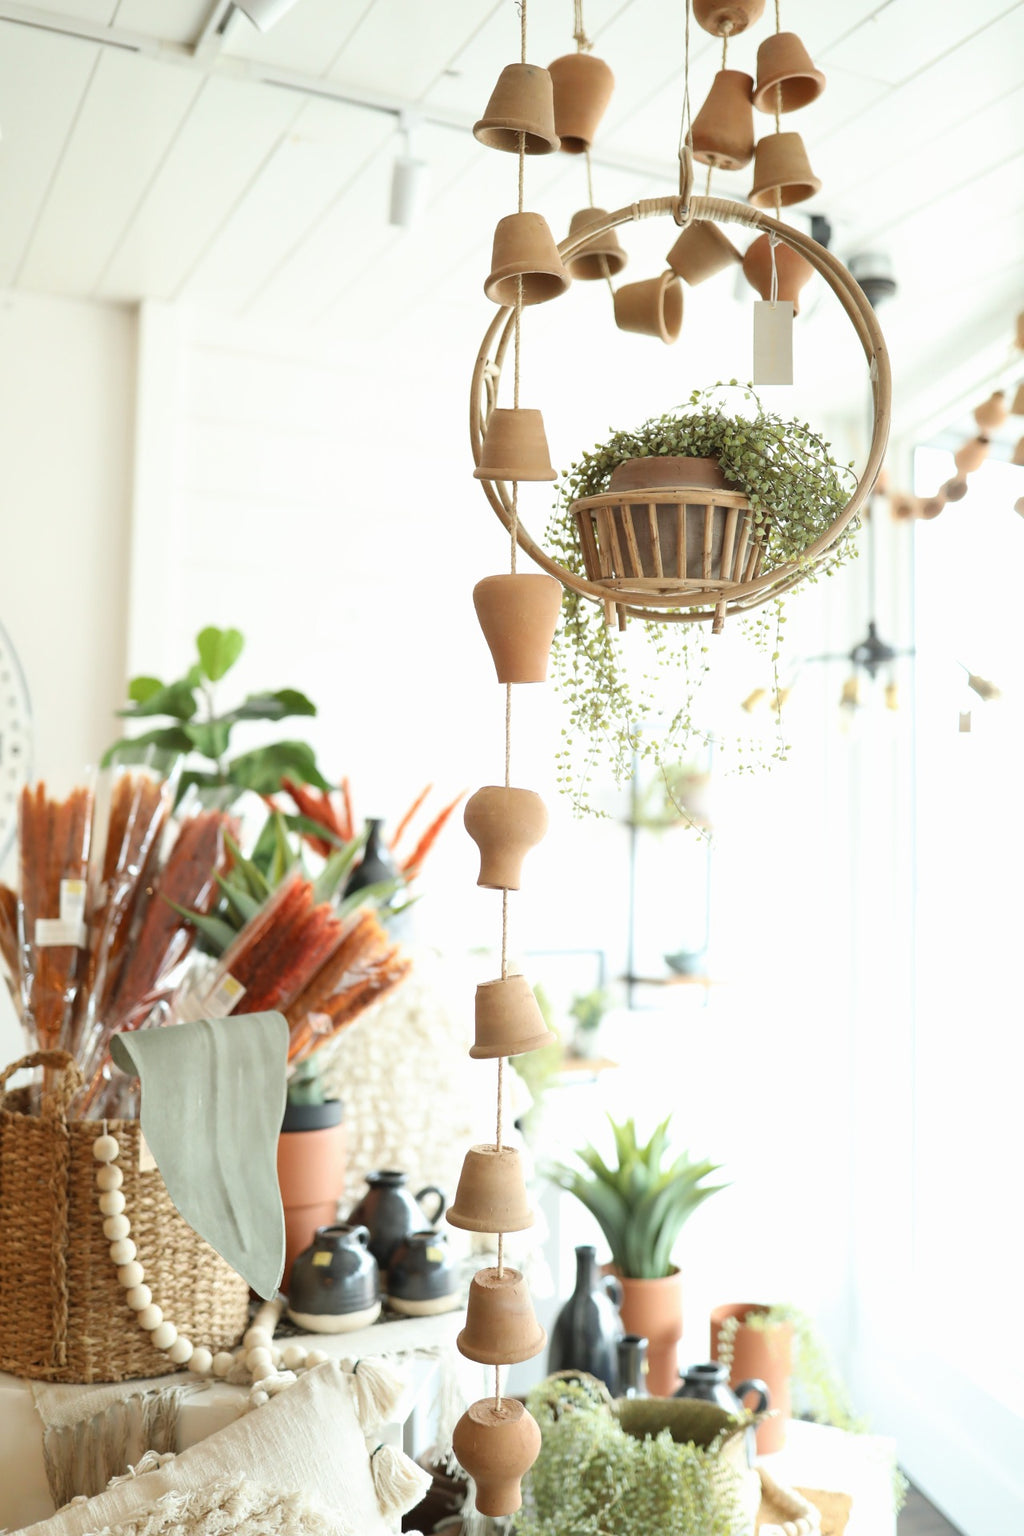 Hanging Clay Pots